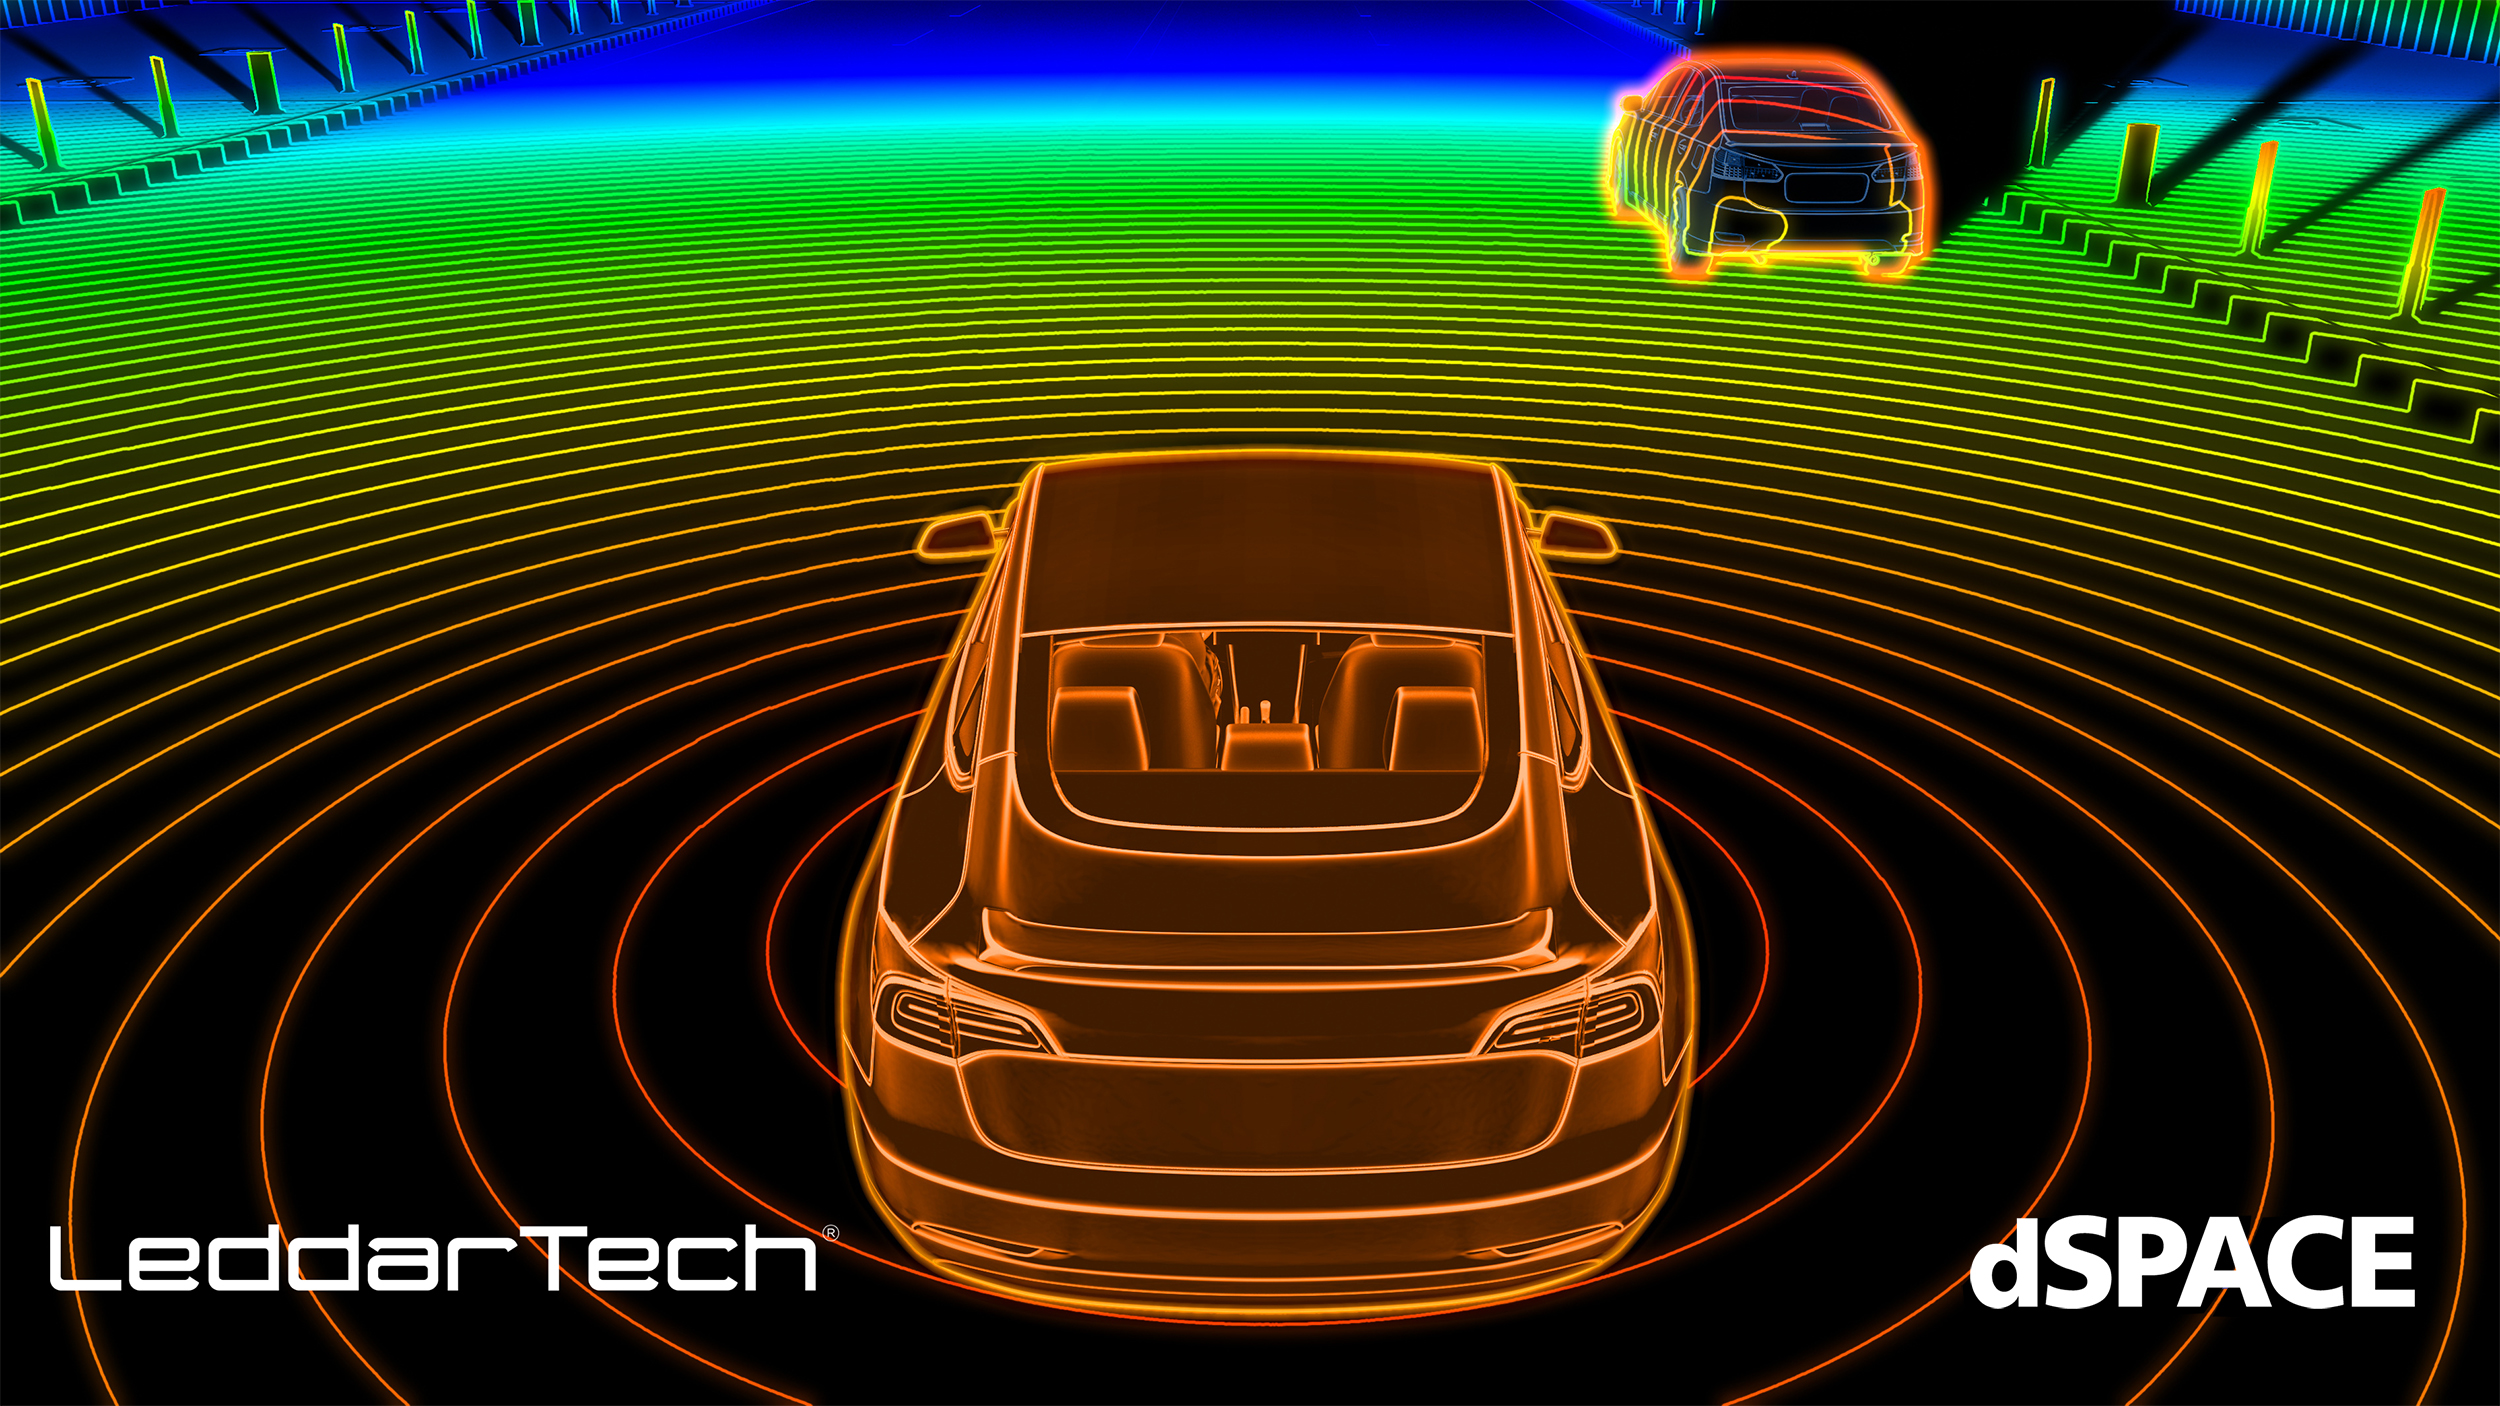 dSPACE and LeddarTech Join Forces to Drive Development of Lidar Innovations for Self-Driving Cars